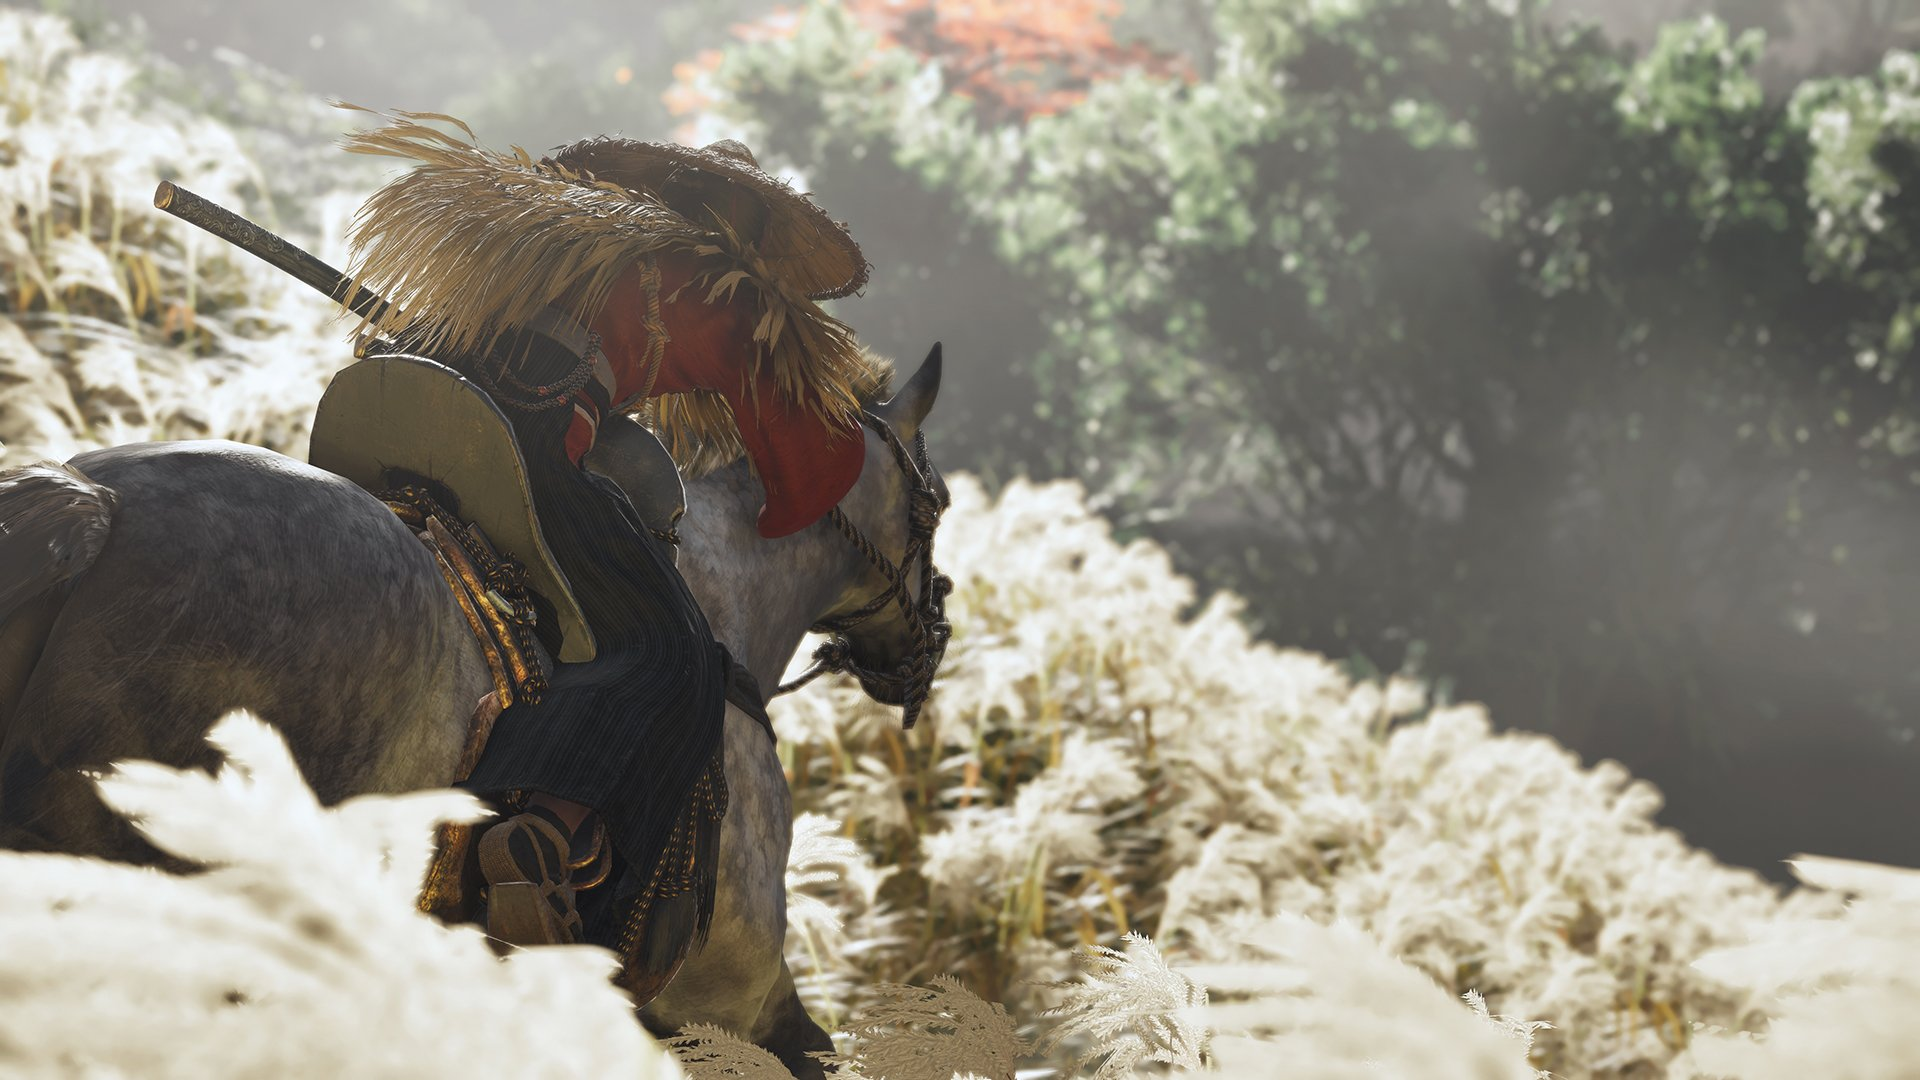 How to save in Ghost of Tsushima